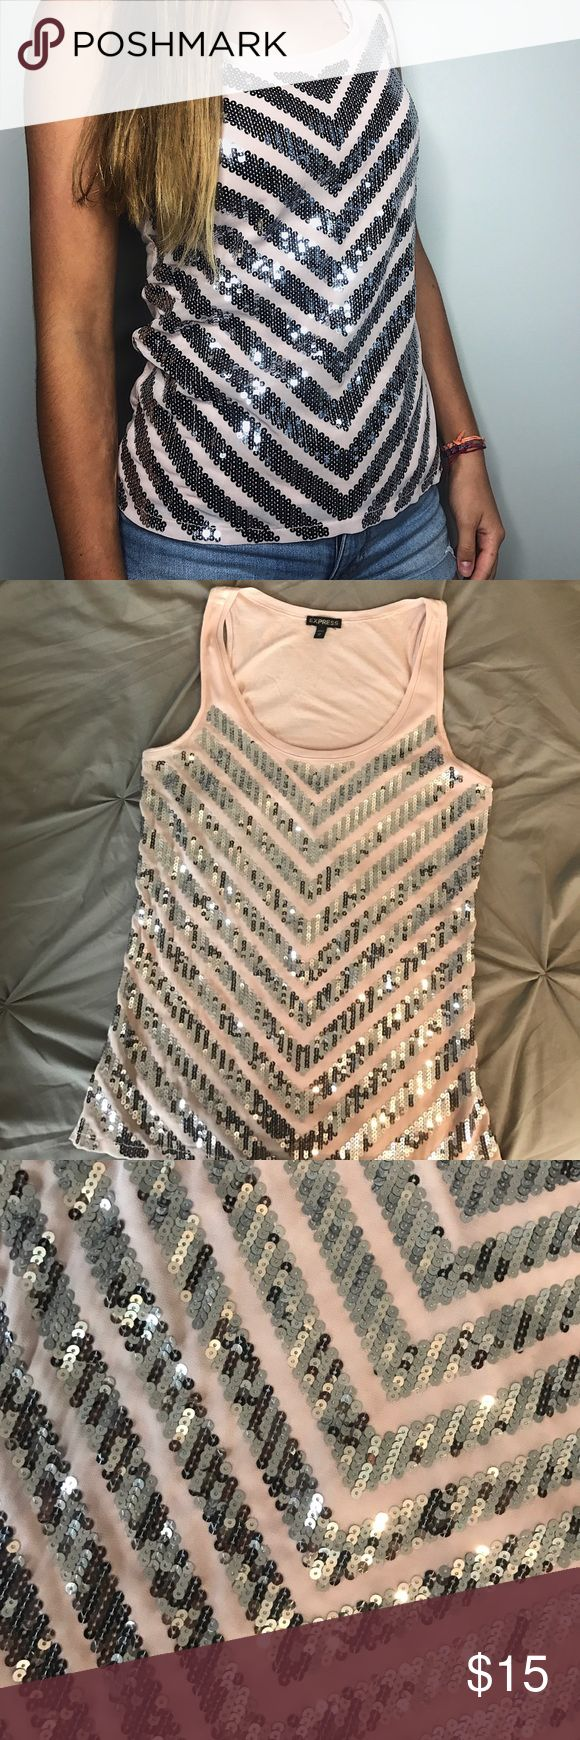 EXPRESS Blush / Punk Sequin Tank Top - NWOT This is a beautiful sequin top by Express. Color is pale pink or blush. Sequins on front only. Never worn. Smoke free home. It's an extra small, but it fits like a small! Express Tops Tank Tops